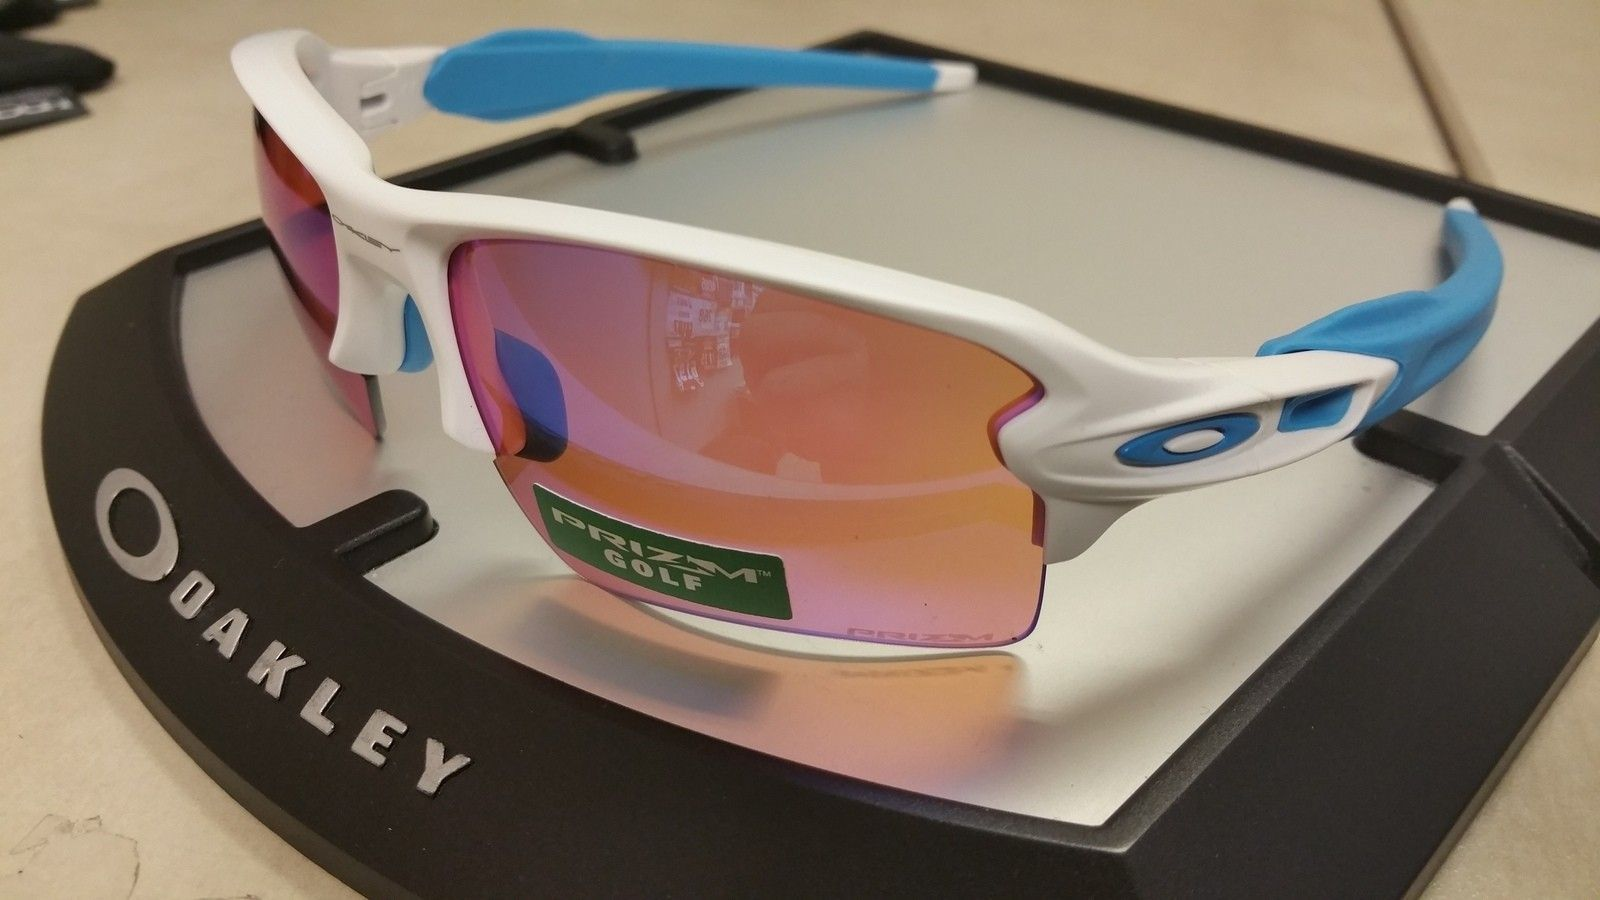 A few Prizm flak jacket 2.0 glasses for sale. - uploadfromtaptalk1438097075775.jpg